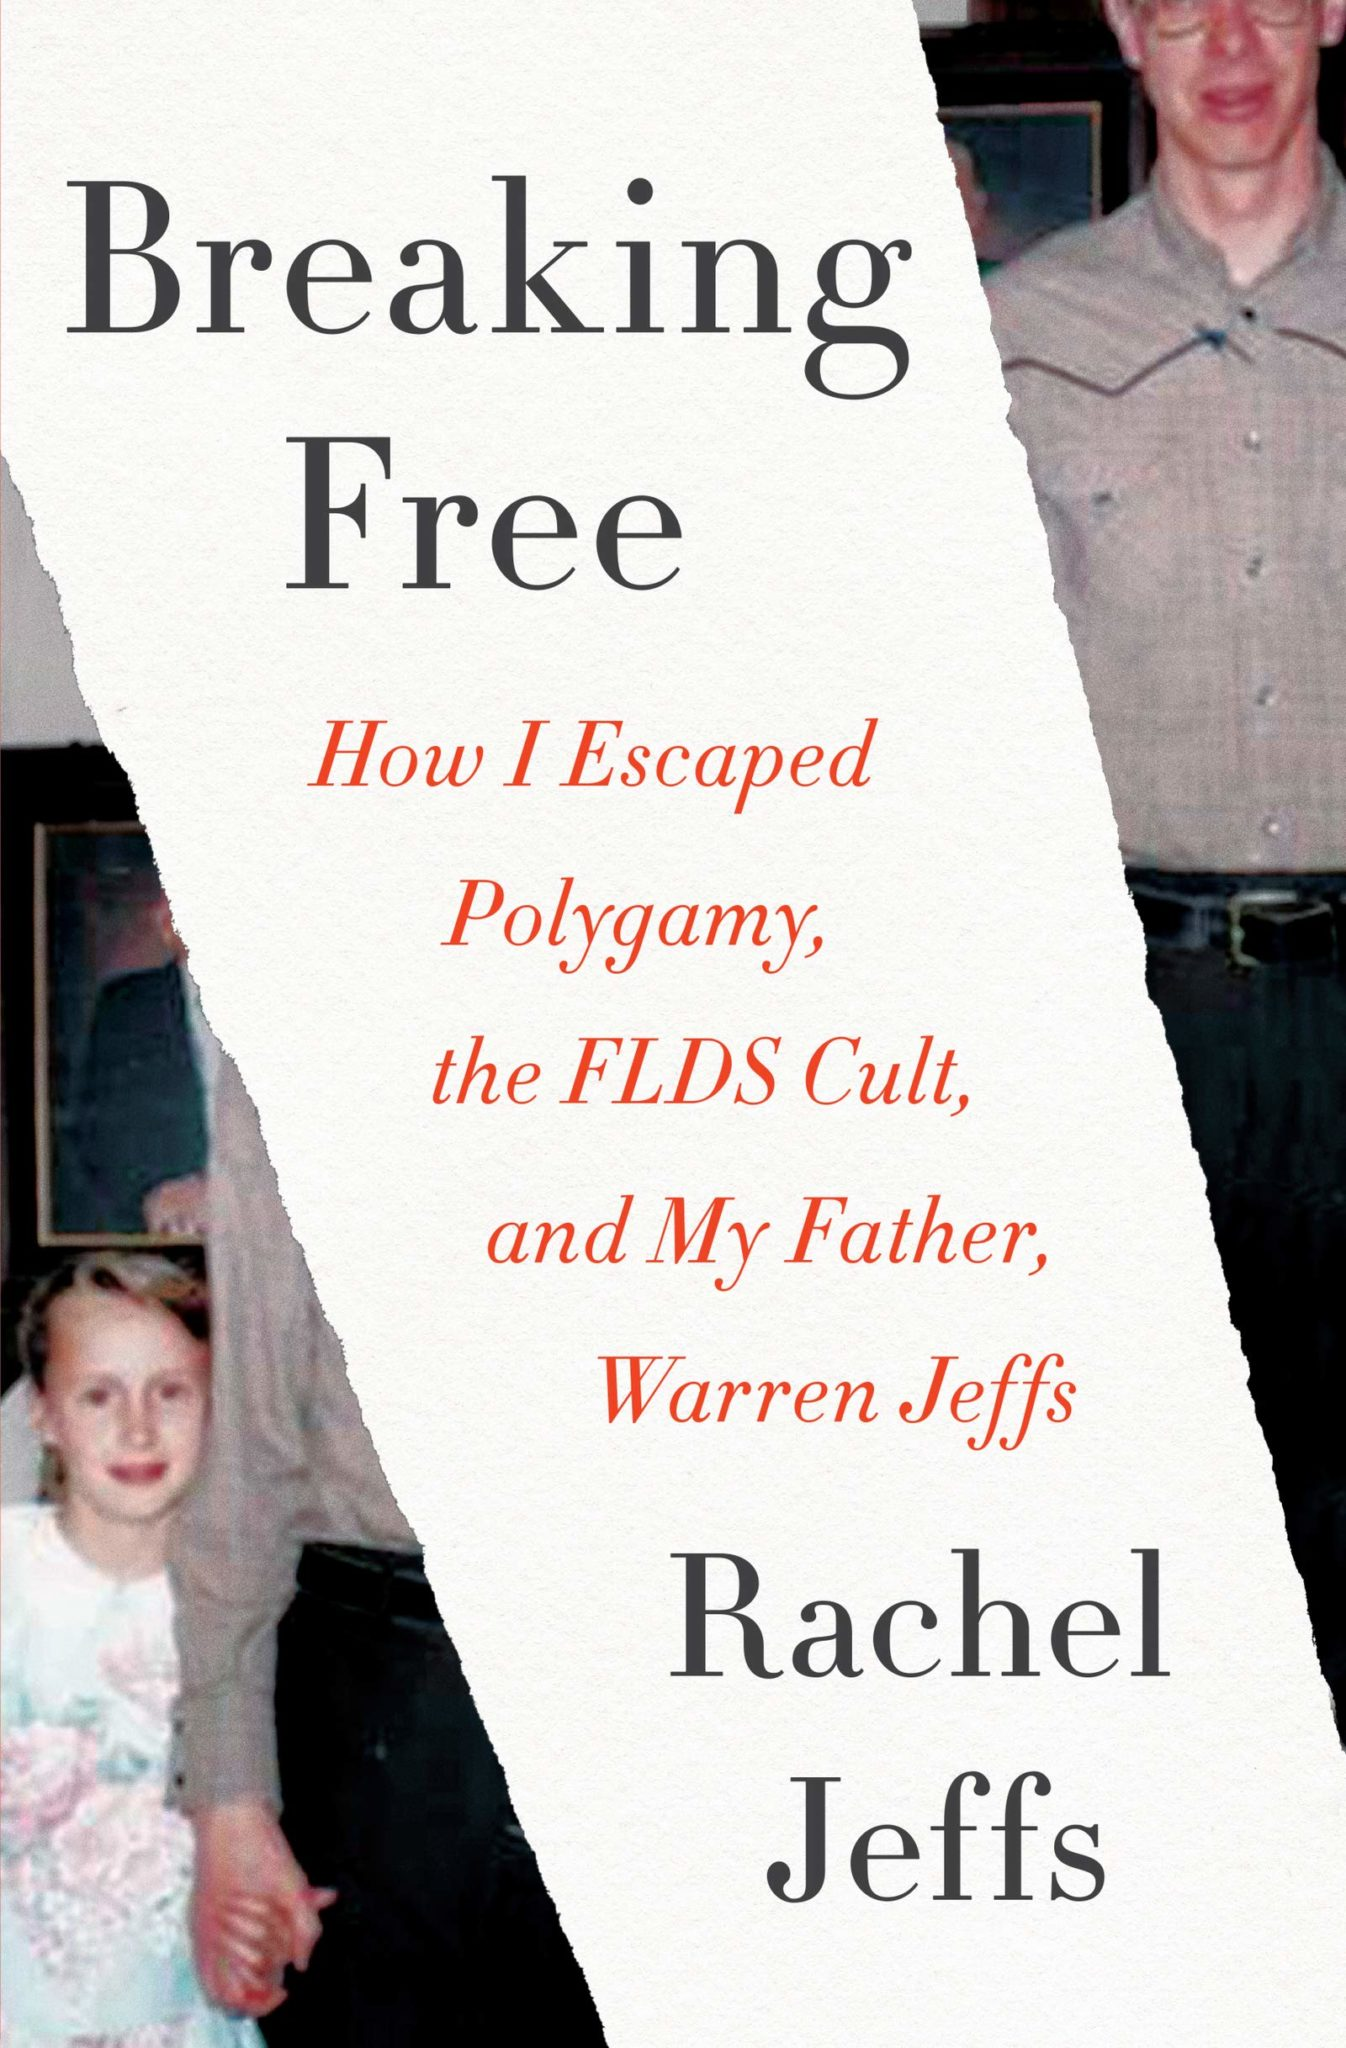 Breaking Free: How I Escaped Polygamy, the FLDS Cult, and My Father, Warren Jeffs by Rachel Jeffs